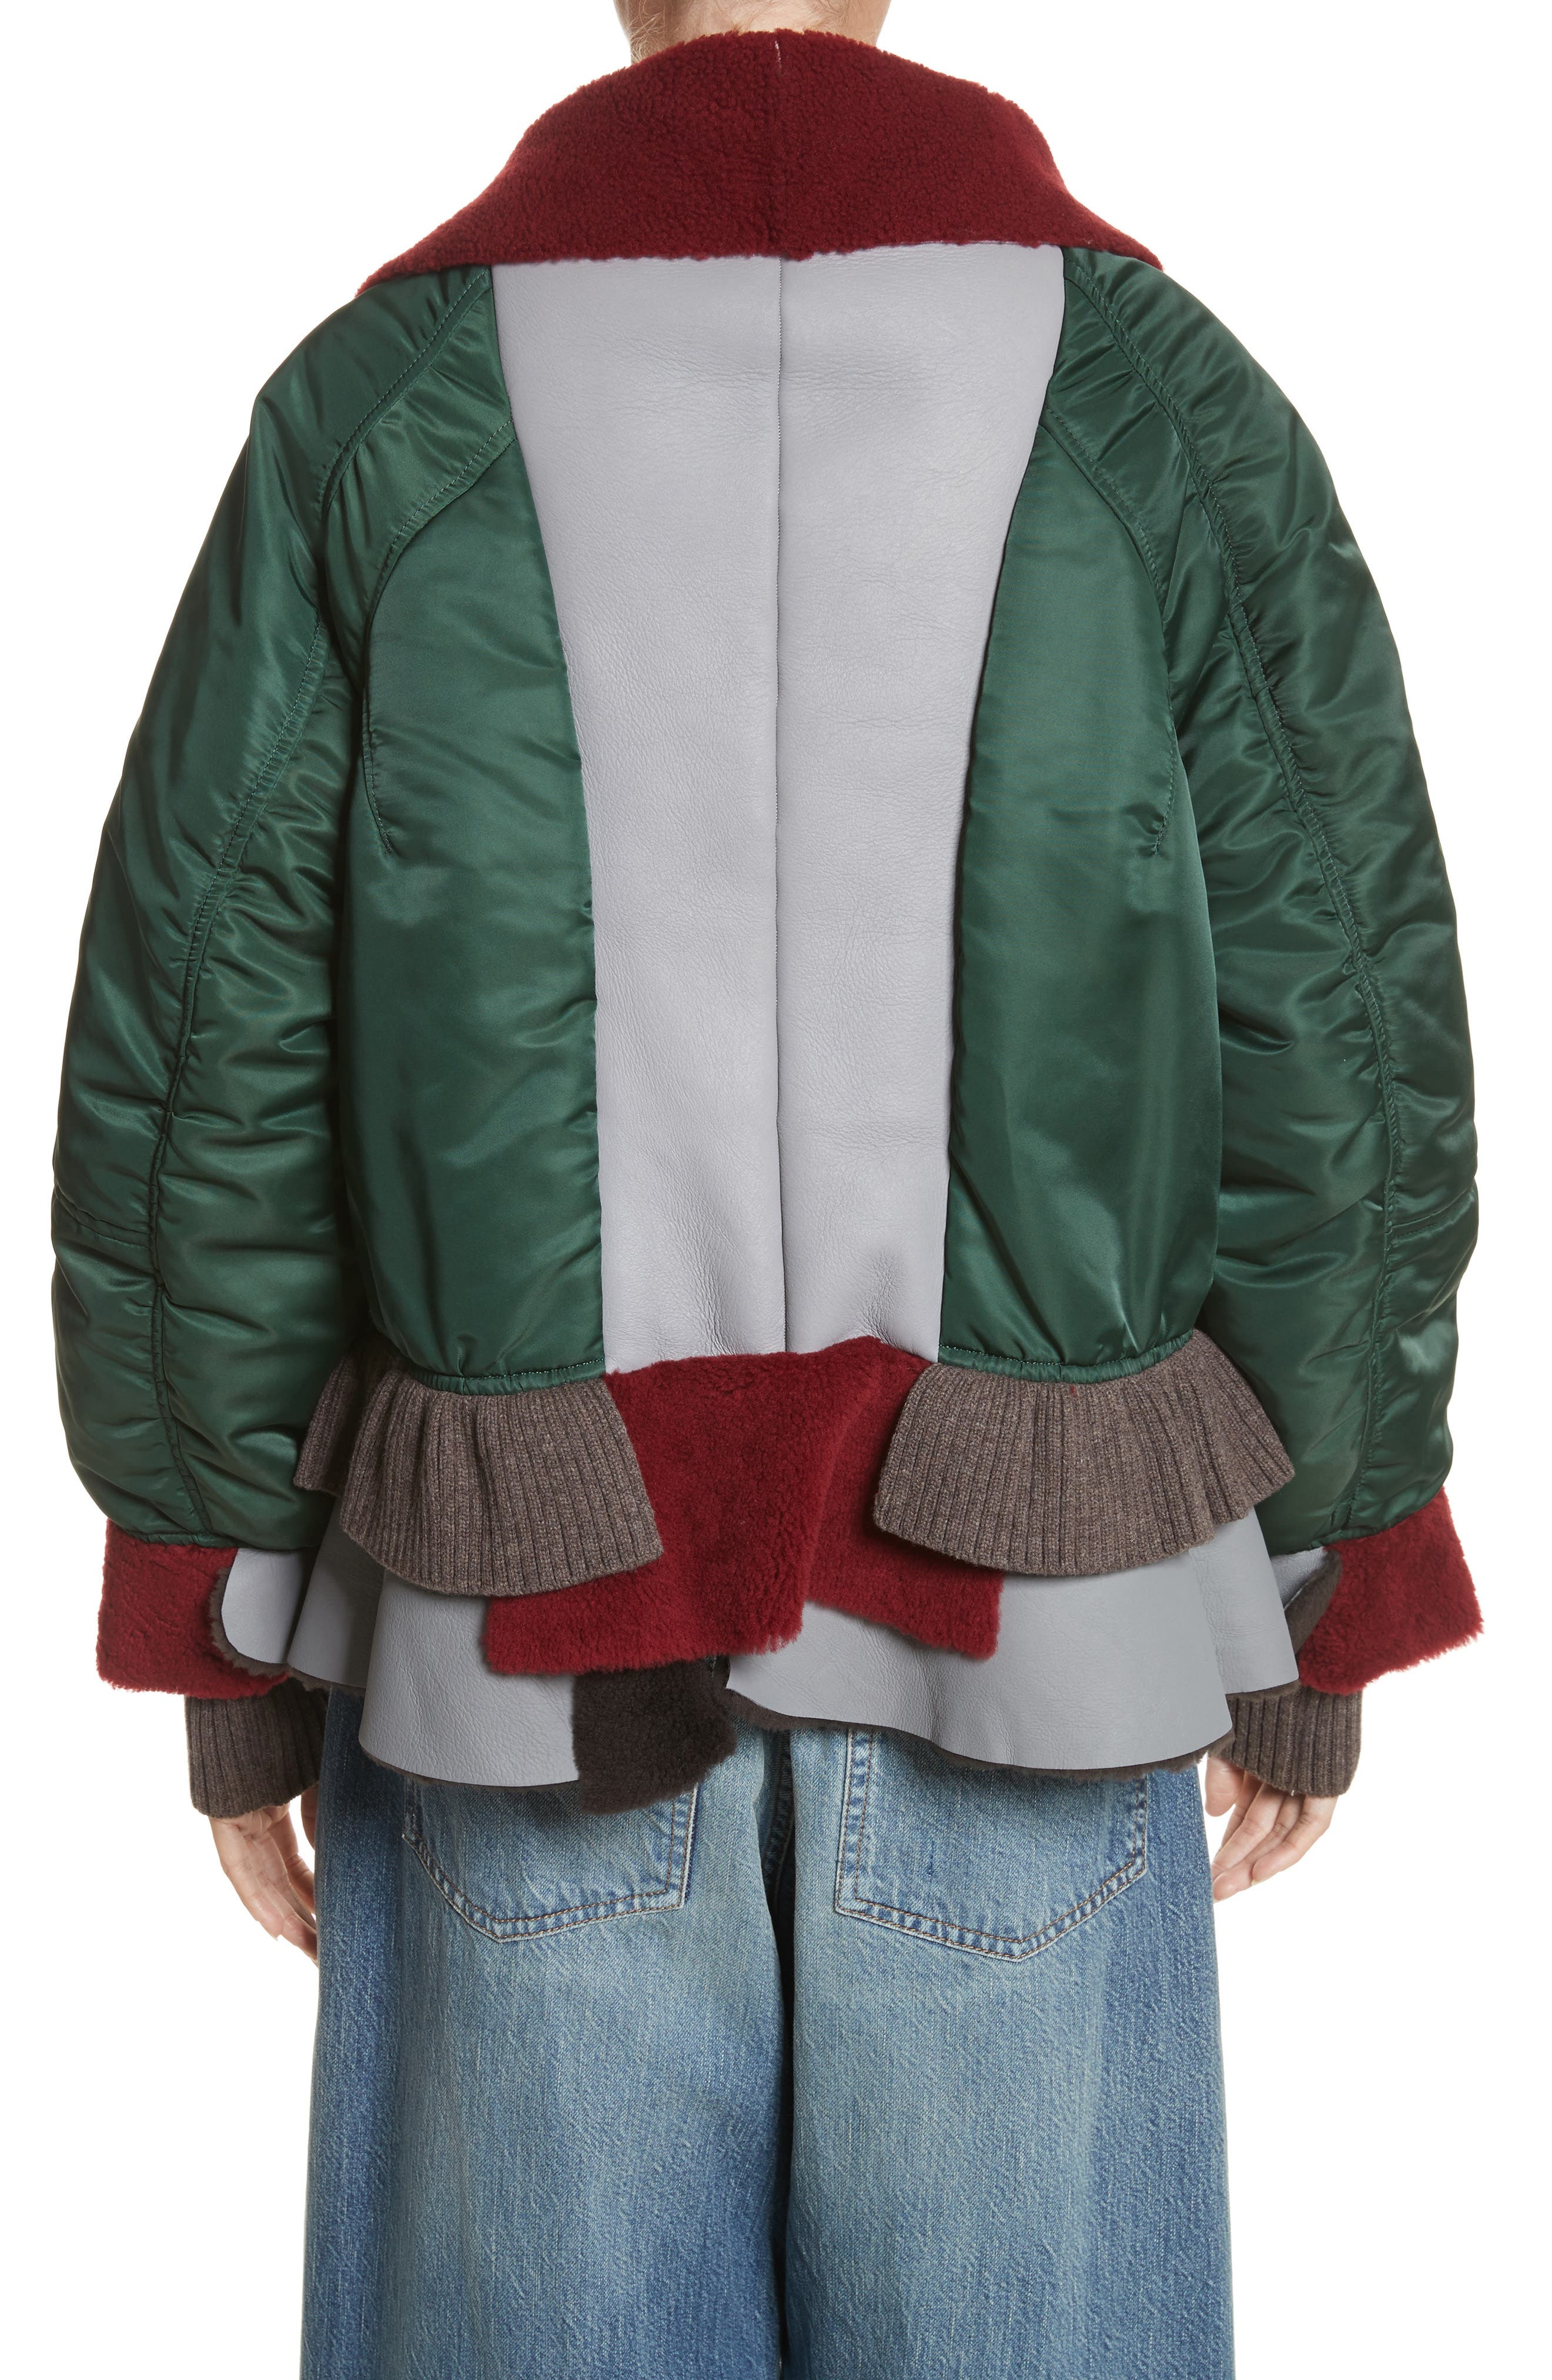 Mixed Media Bomber Jacket with Genuine Shearling Trim,                             Alternate thumbnail 2, color,